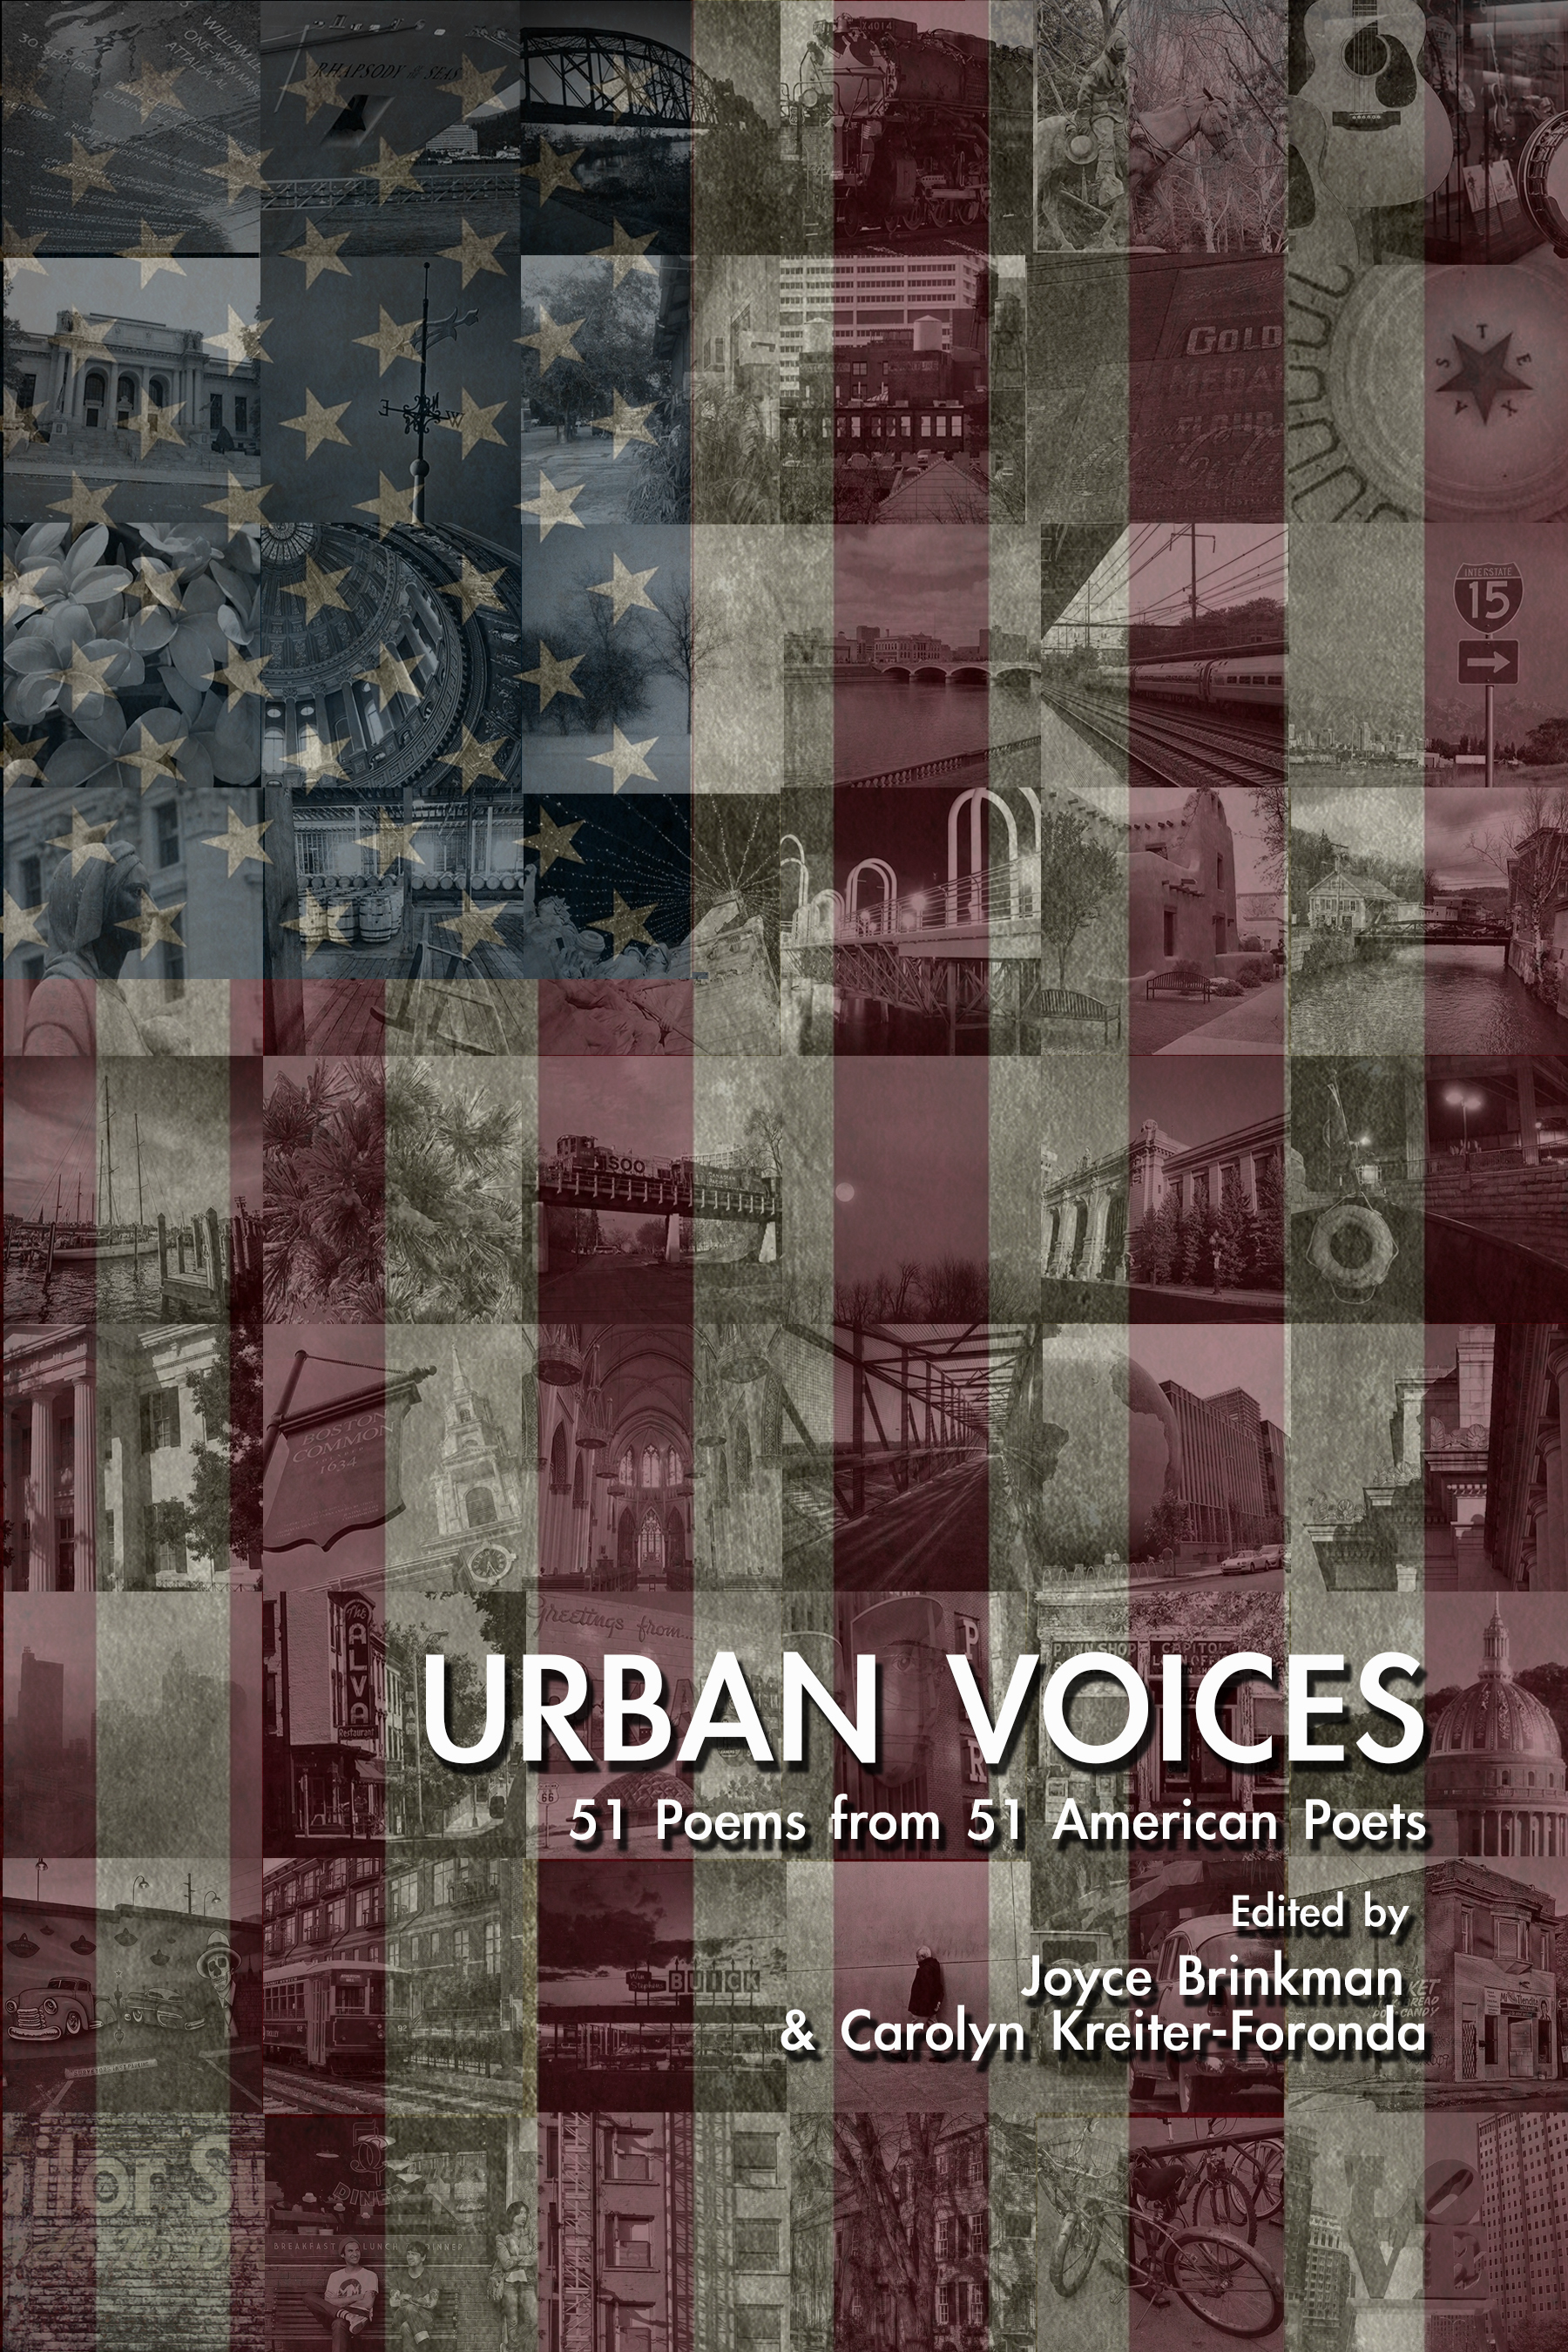 Urban Voices 51 Poems From 51 American Poets Joann Balingit